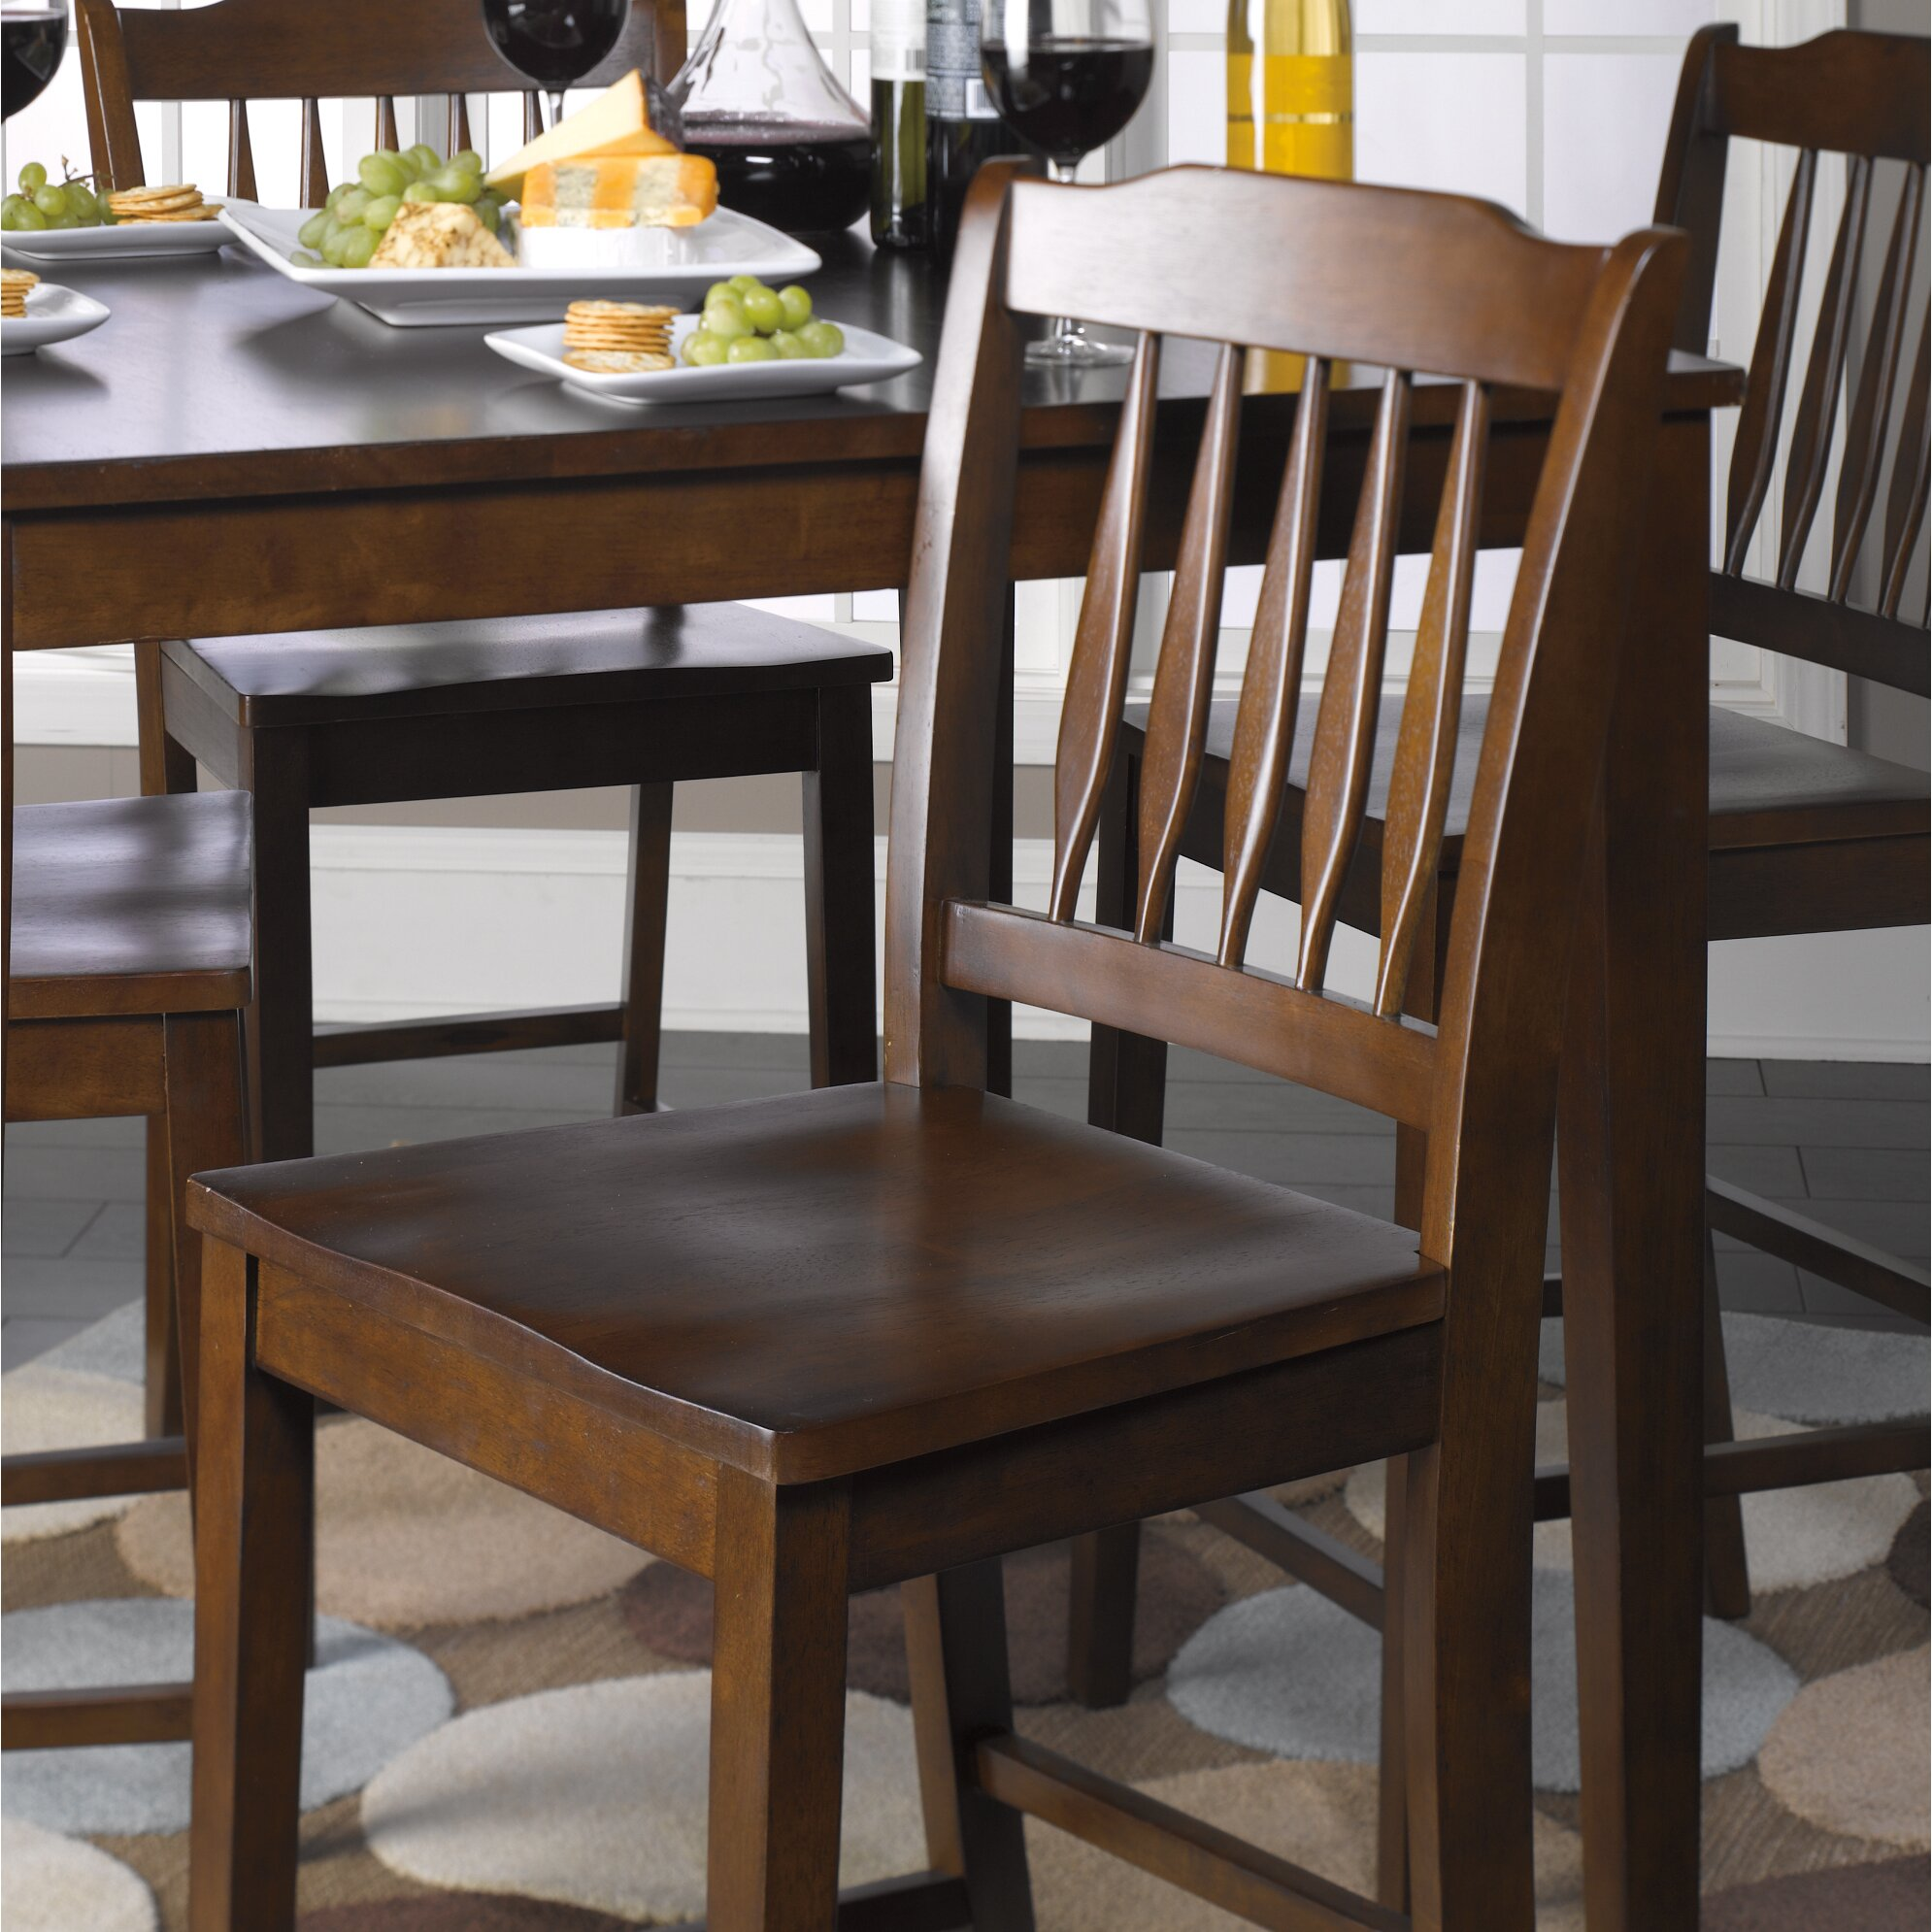 Roundhill Furniture 3 Piece Counter Height Pub Table Set: Roundhill Furniture 5 Piece Counter Height Dining Set